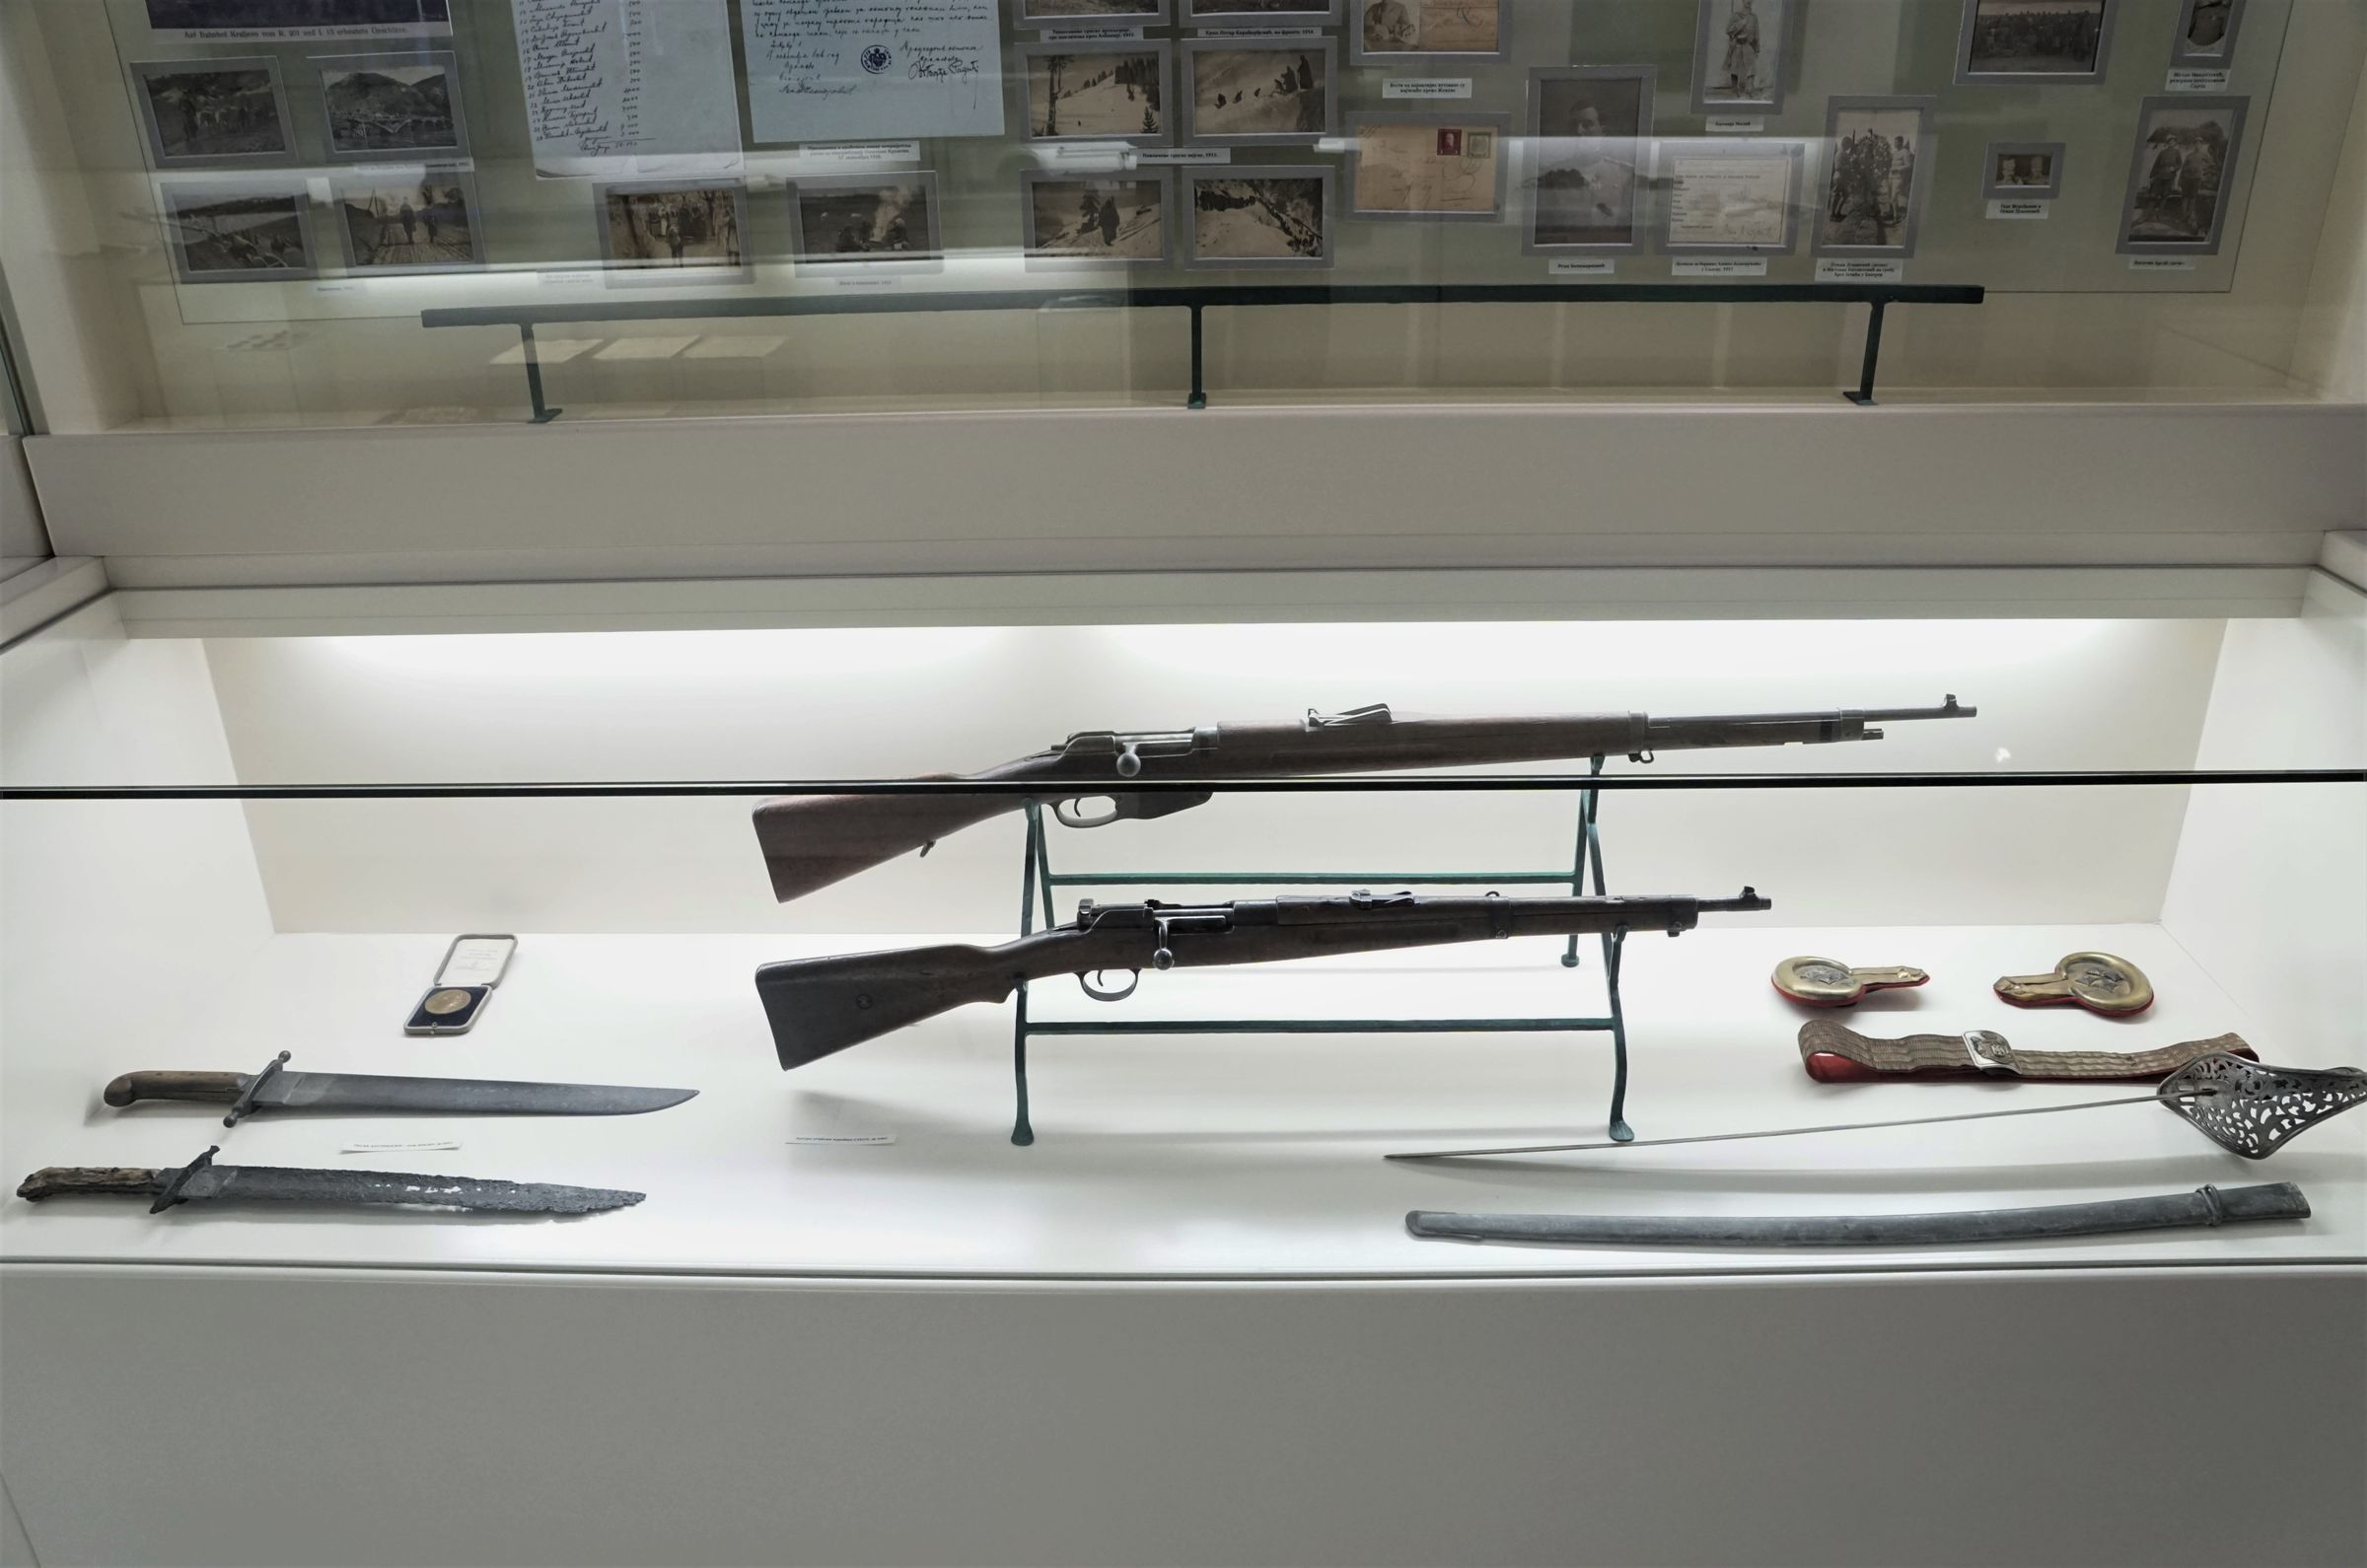 Display case with weapons used in World War I